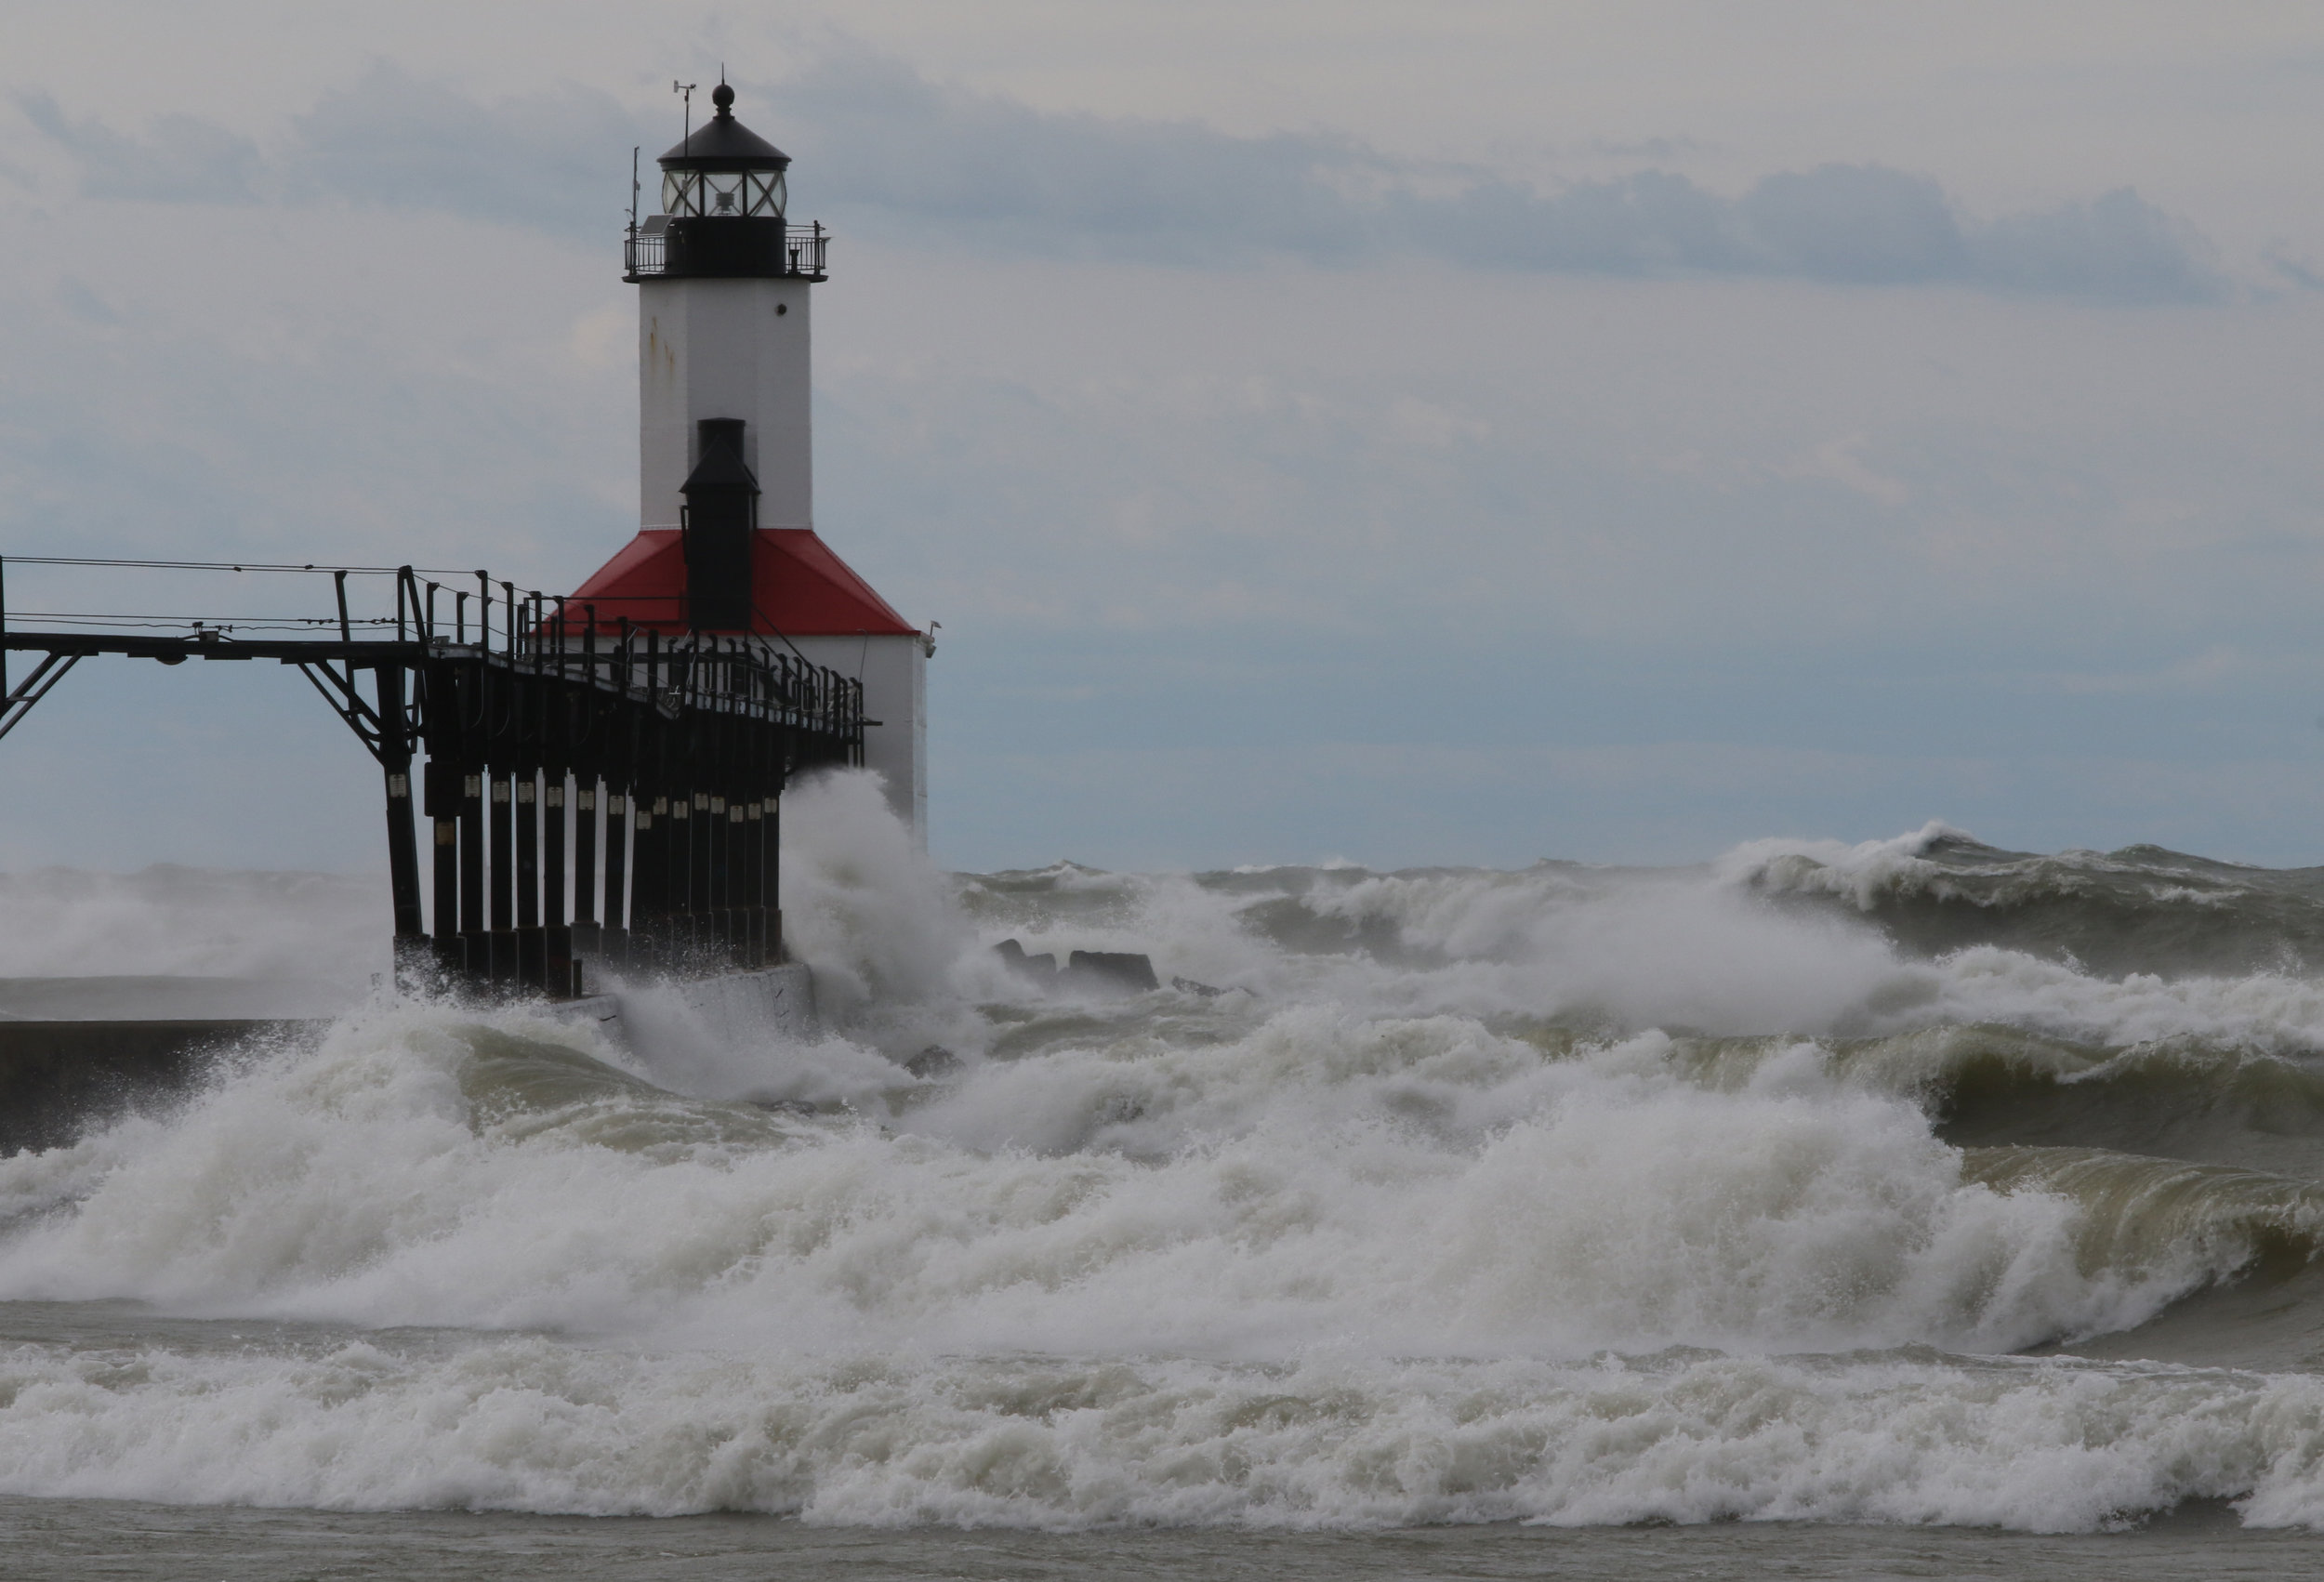 Waves batter the pier by the Michigan City, Indiana lighthouse.